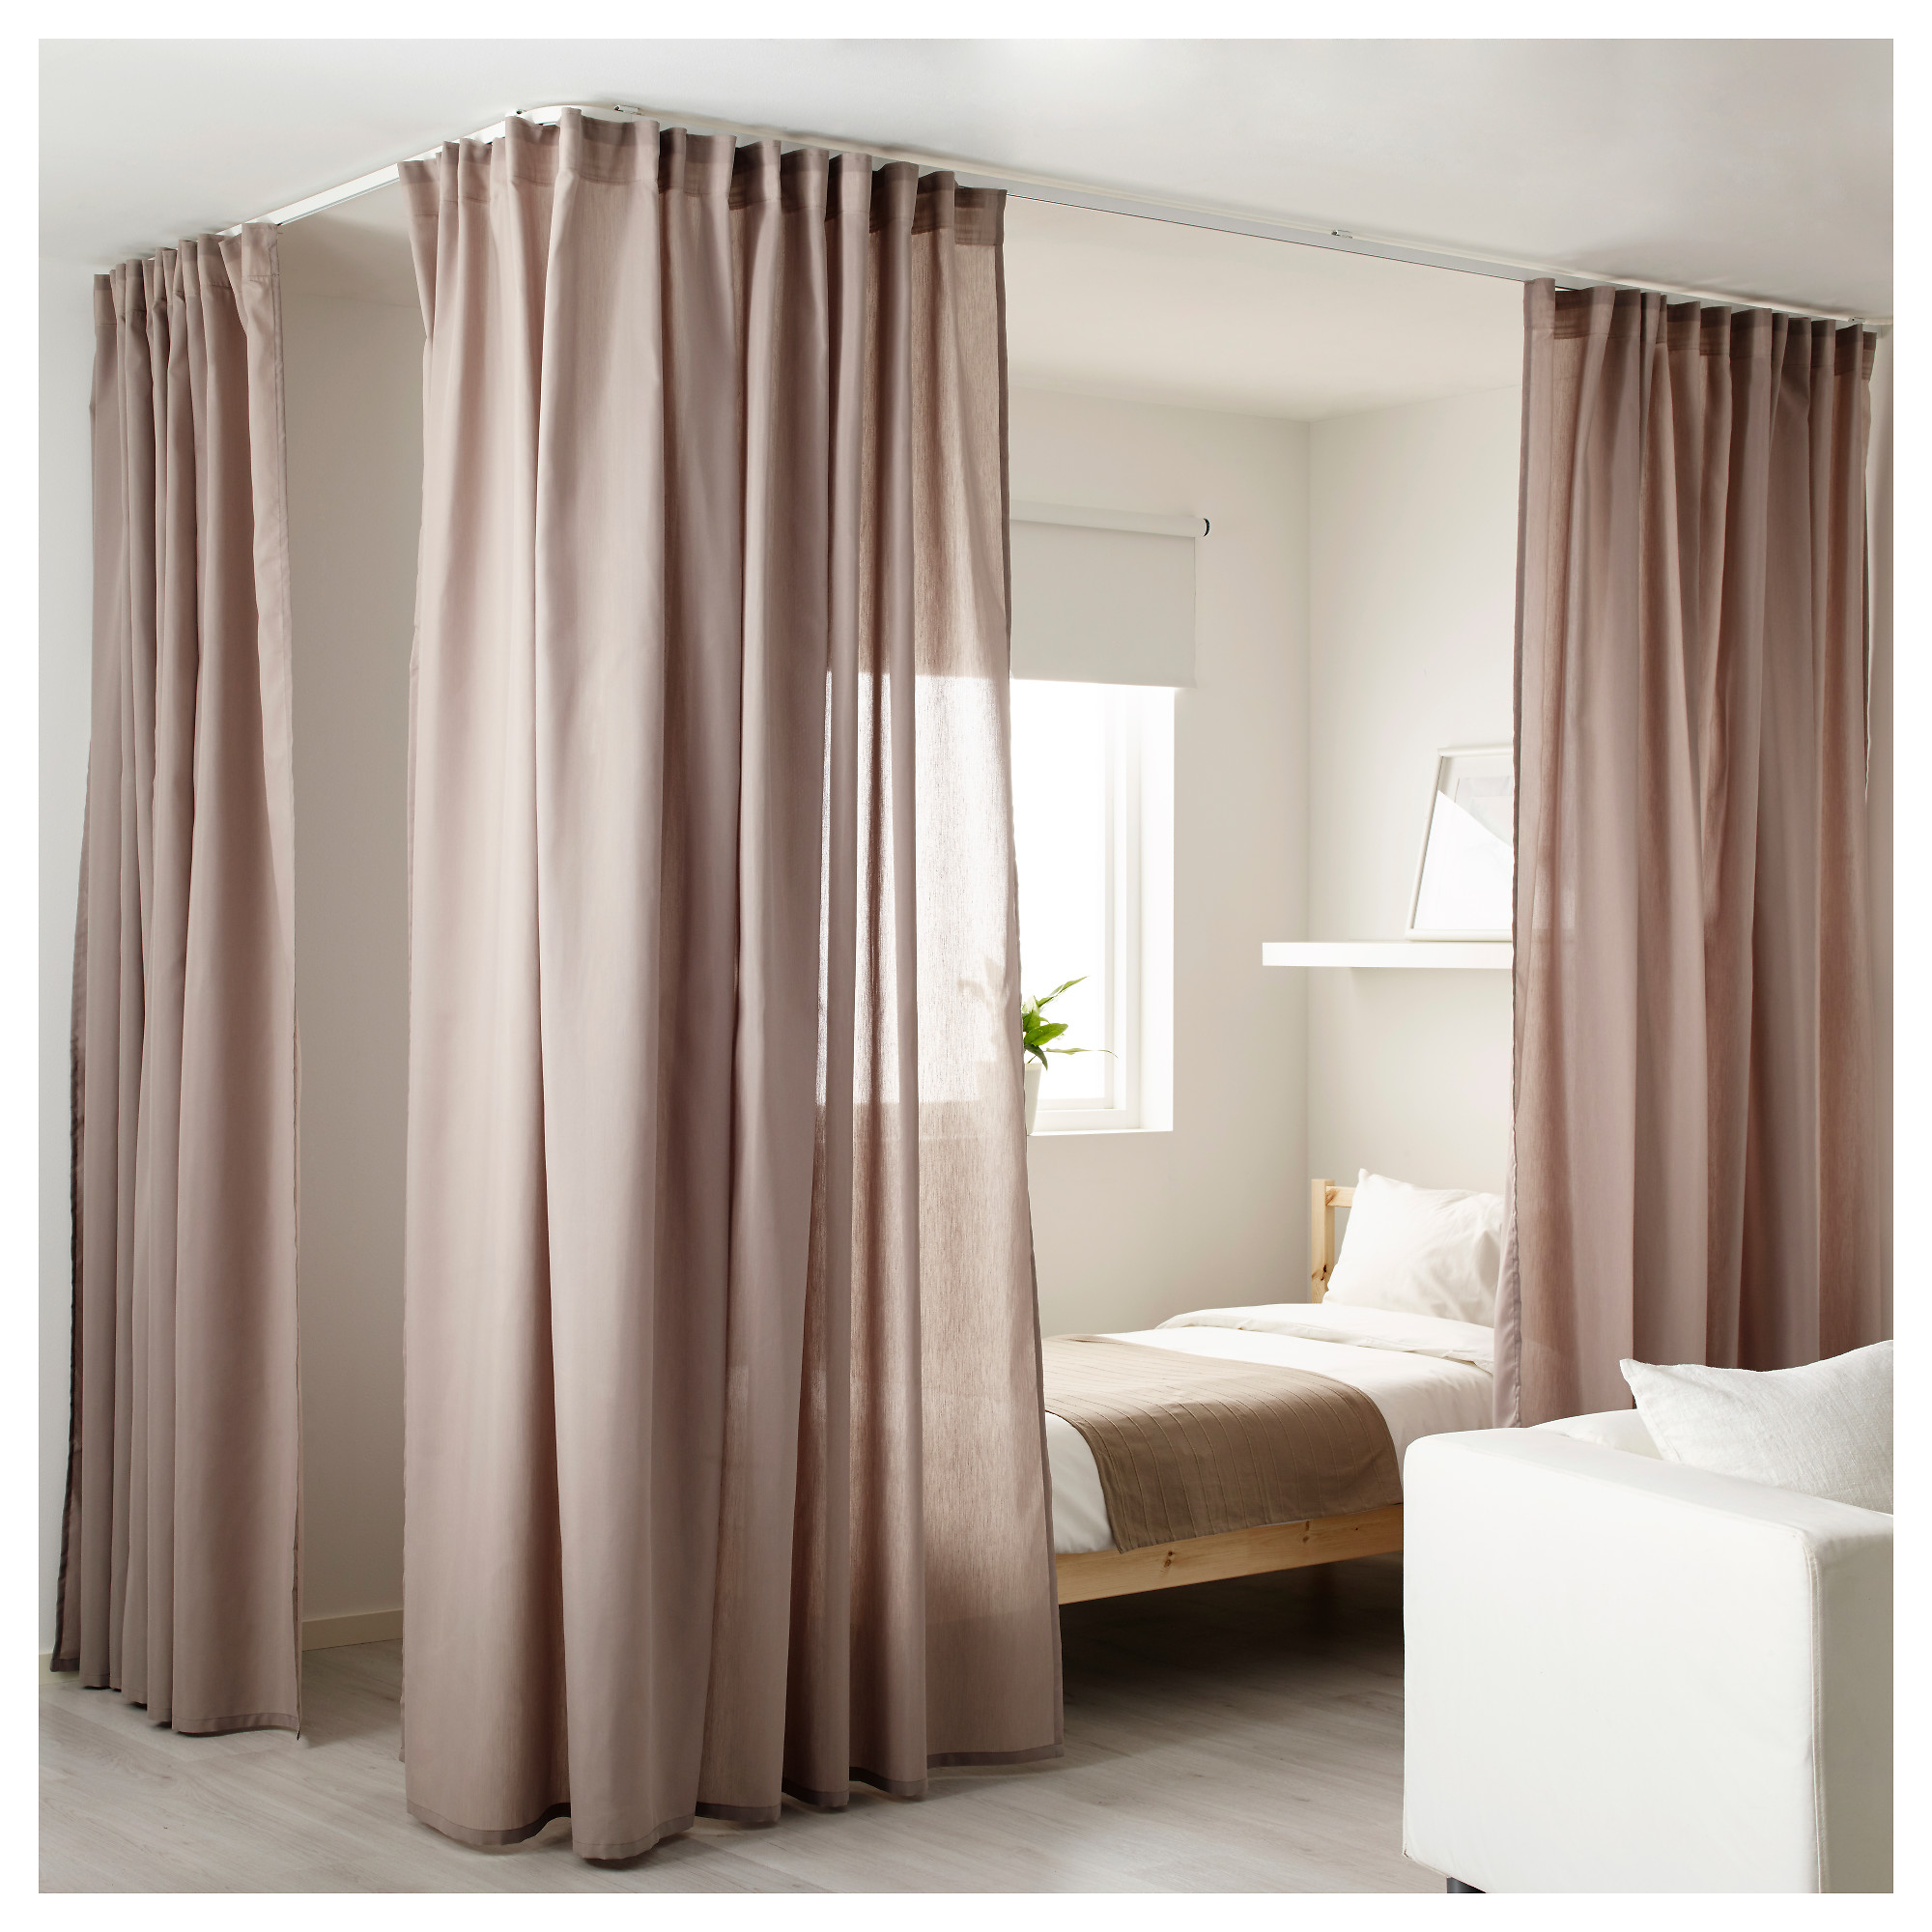 Curtain Enchanting Room Divider Curtains For Your Space